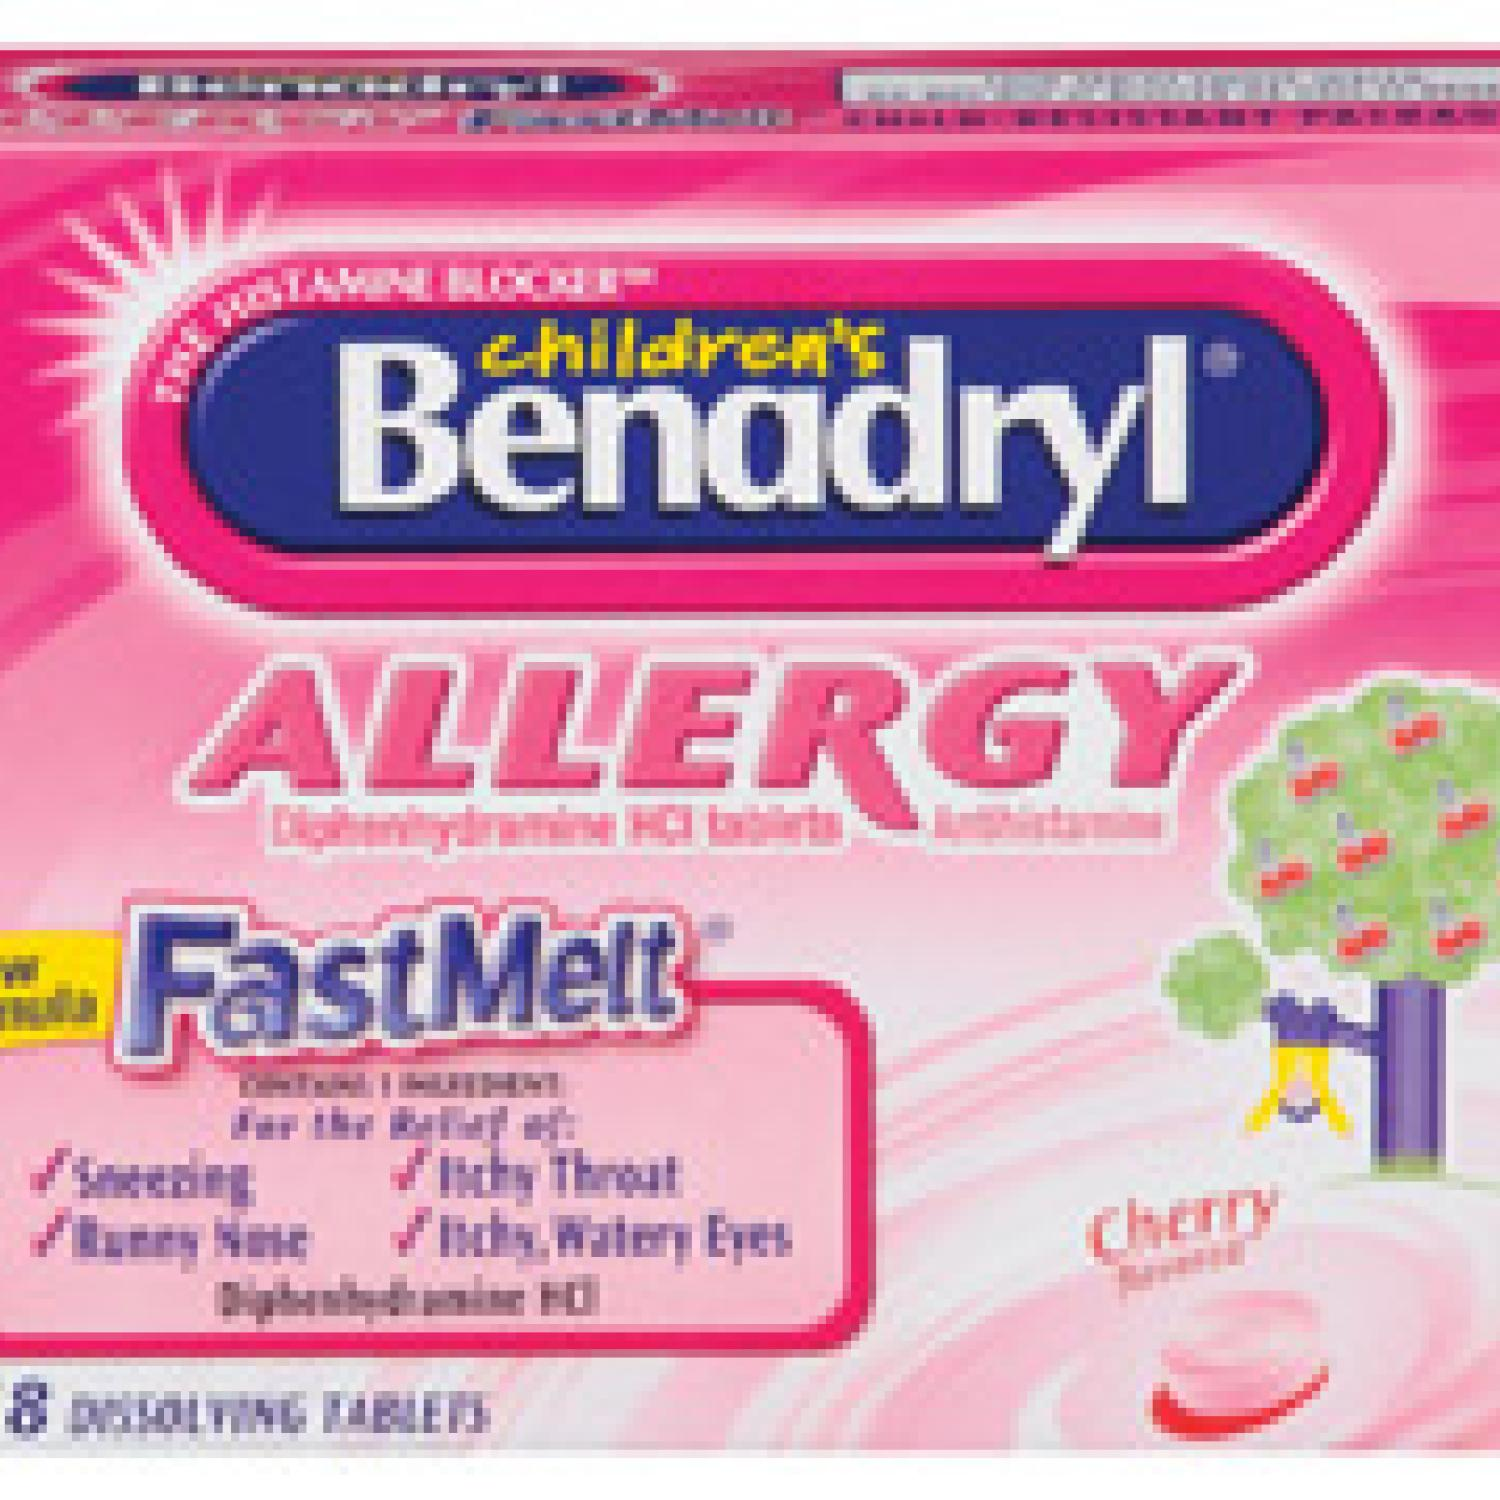 Benadryl Funny Images - Reverse Search